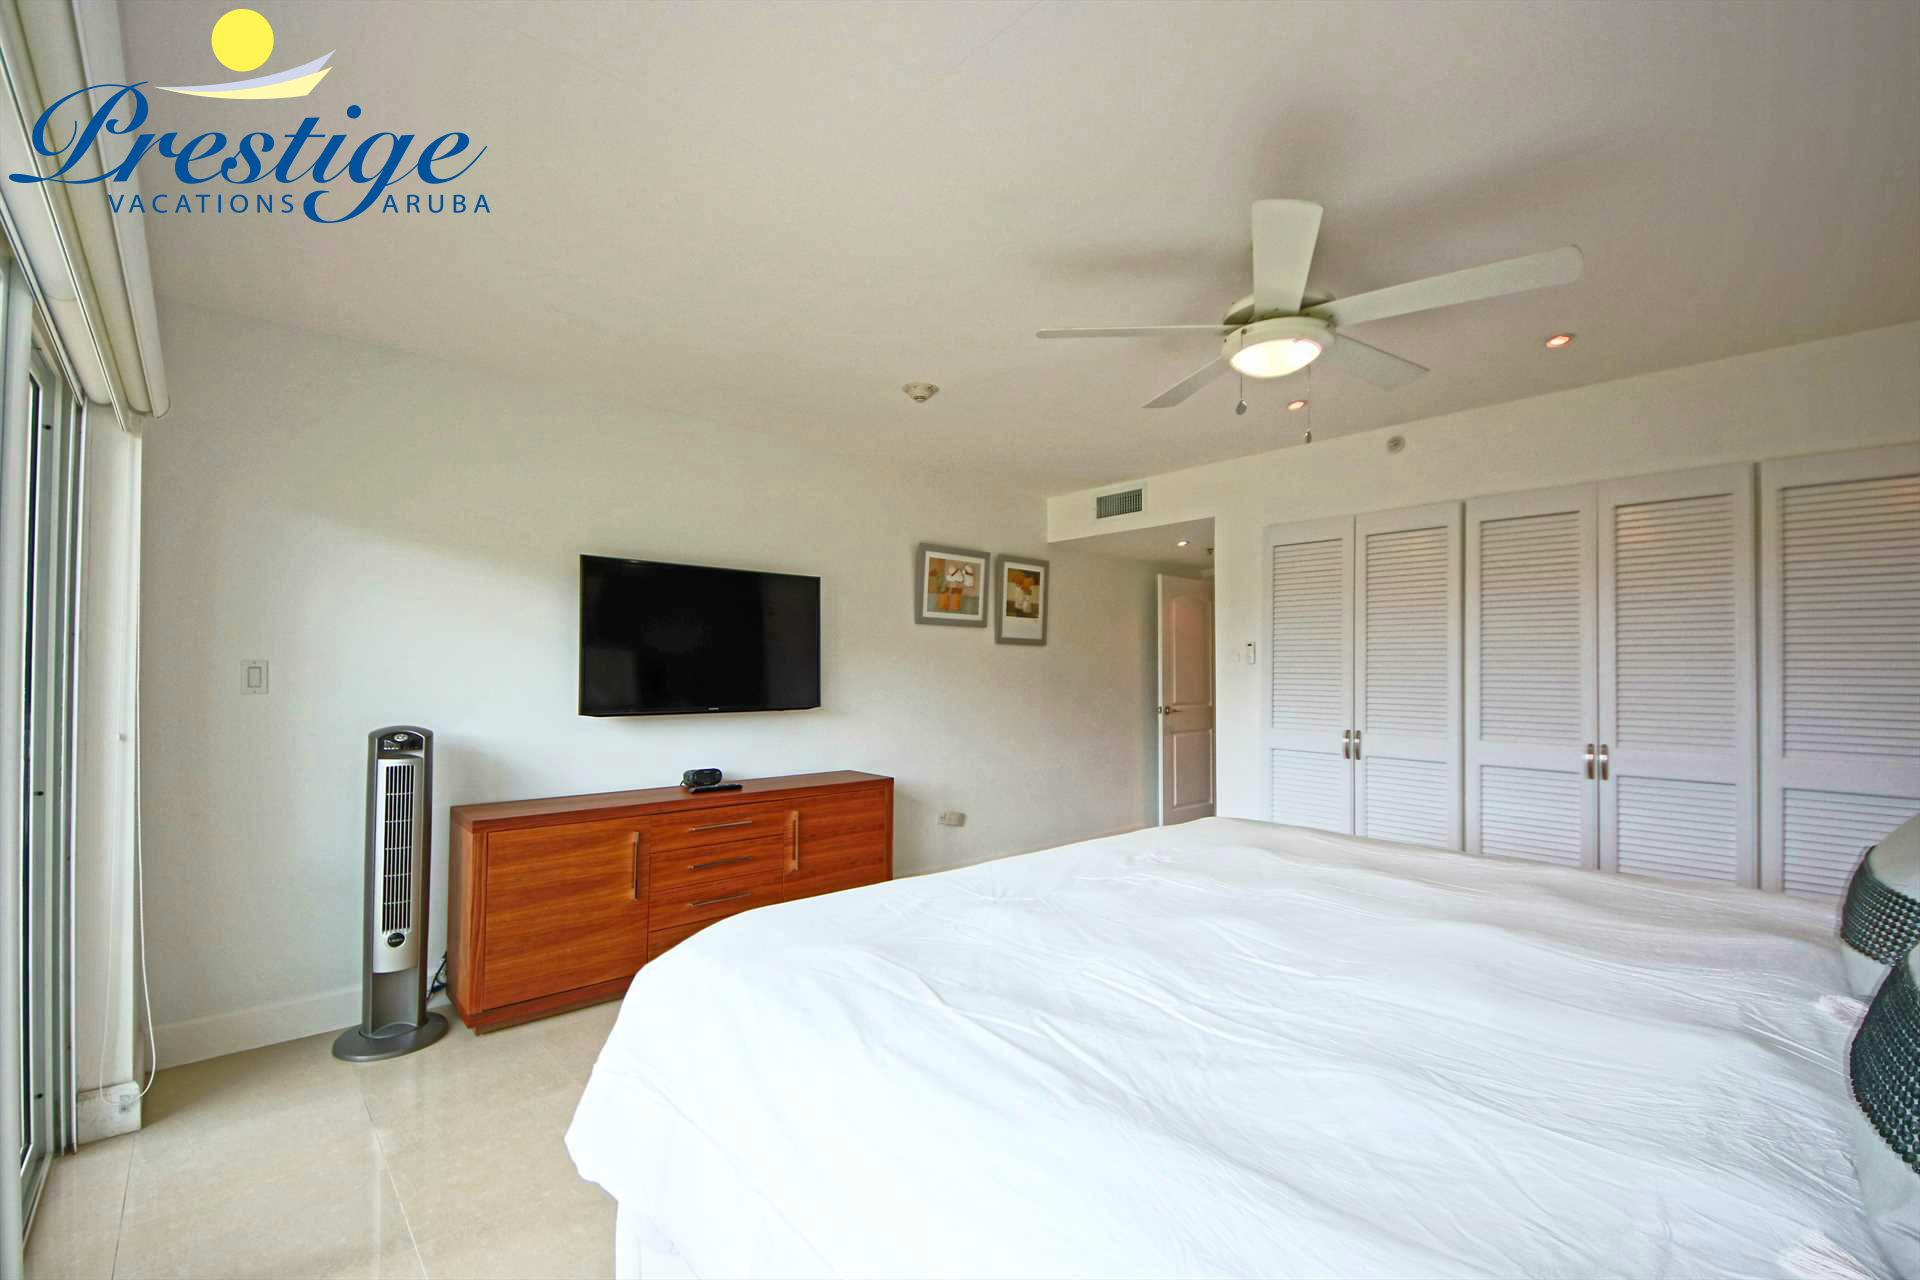 The master bedroom with a TV and built-in closets